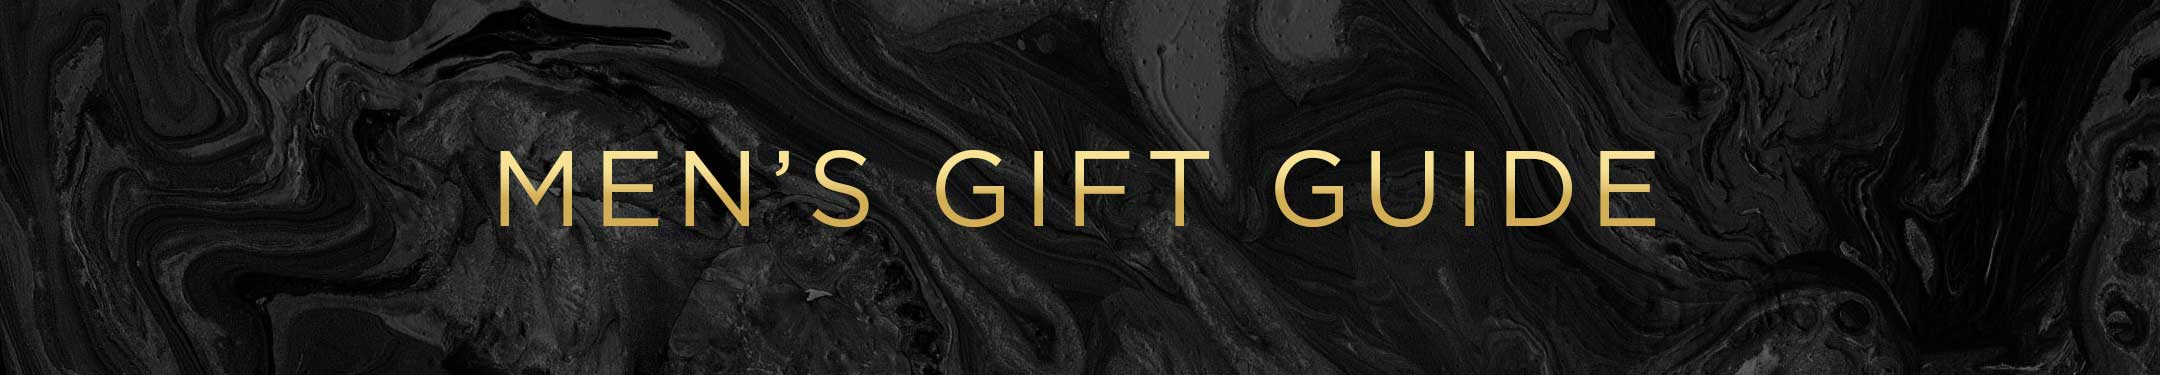 View our Gift Guide for Men